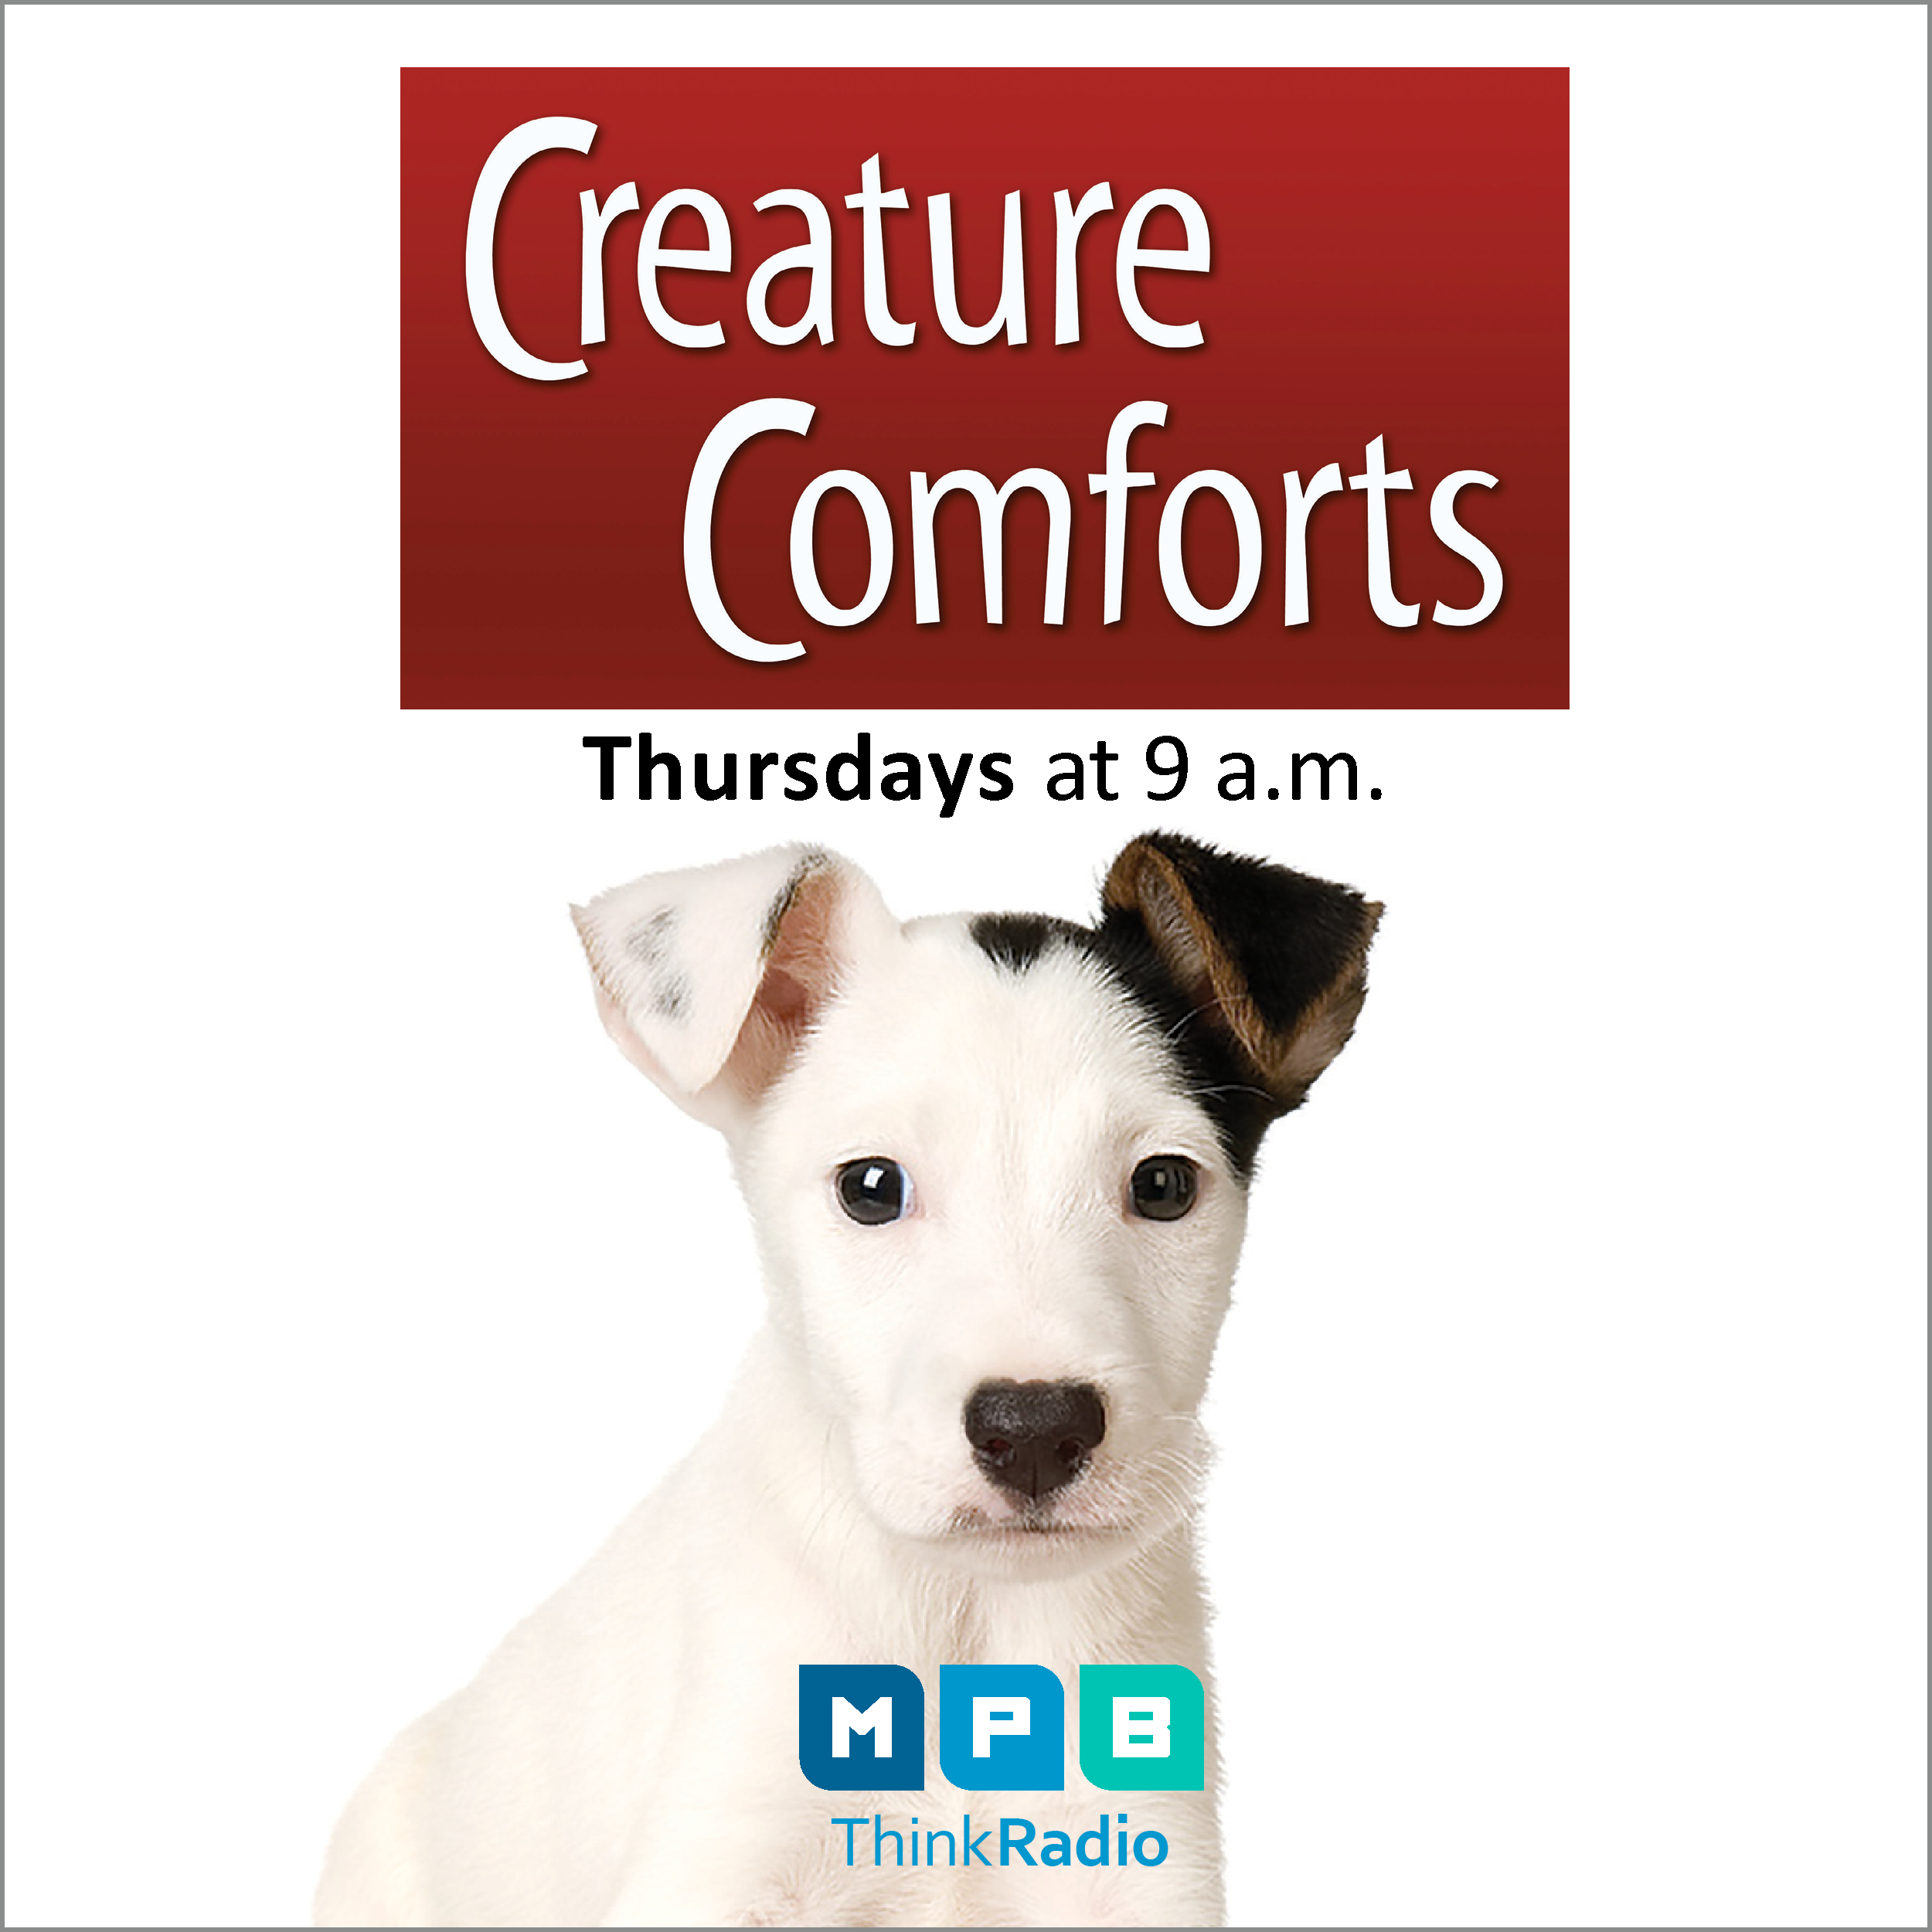 Listen to Creature Comforts every Thursday at 9 am on MPB Think Radio